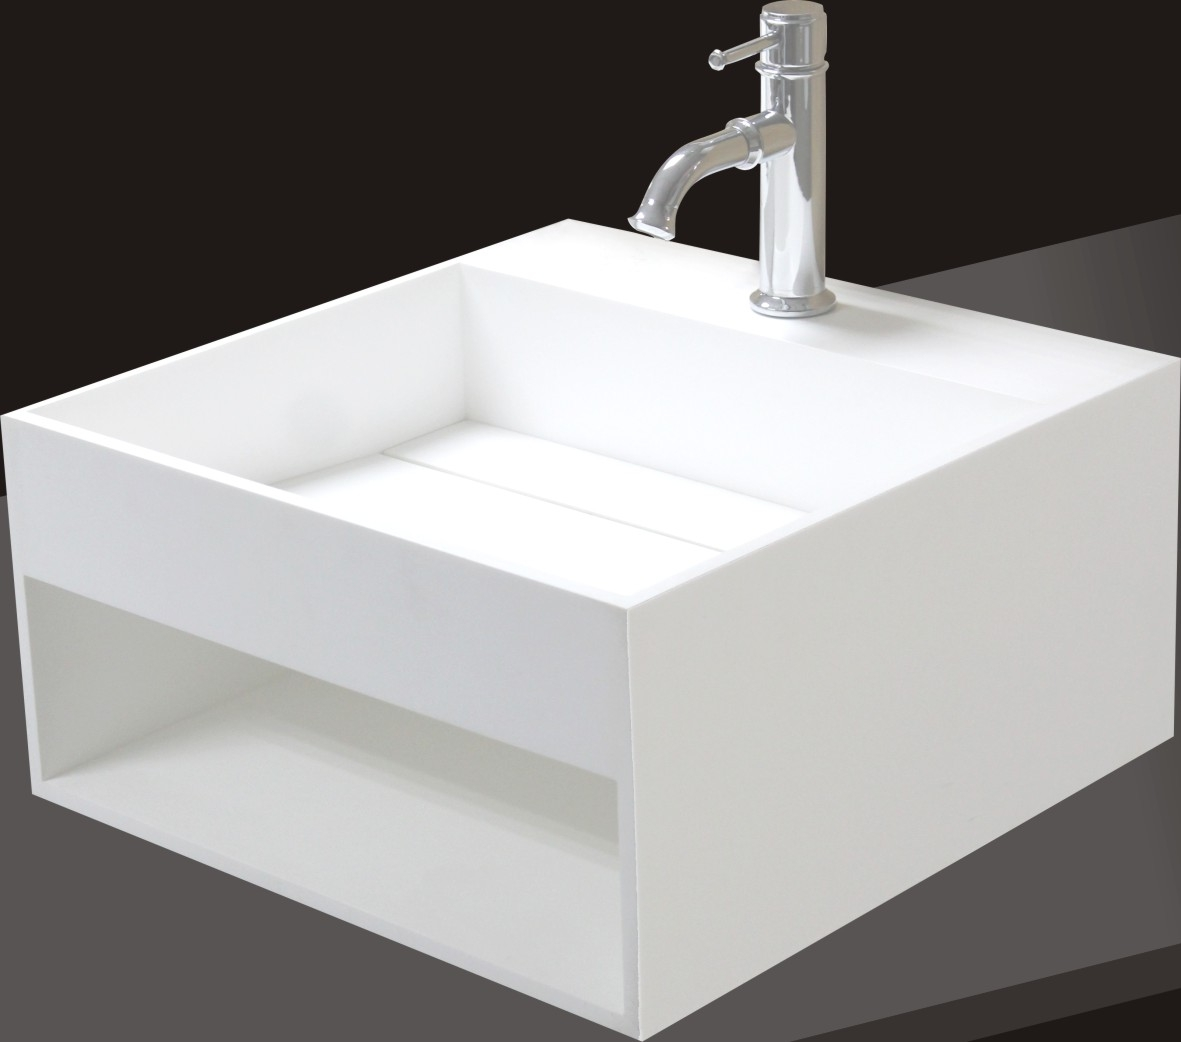 Wall hanging sink bathroom - Cheap White Small Wall Mount Sink For Bathroom